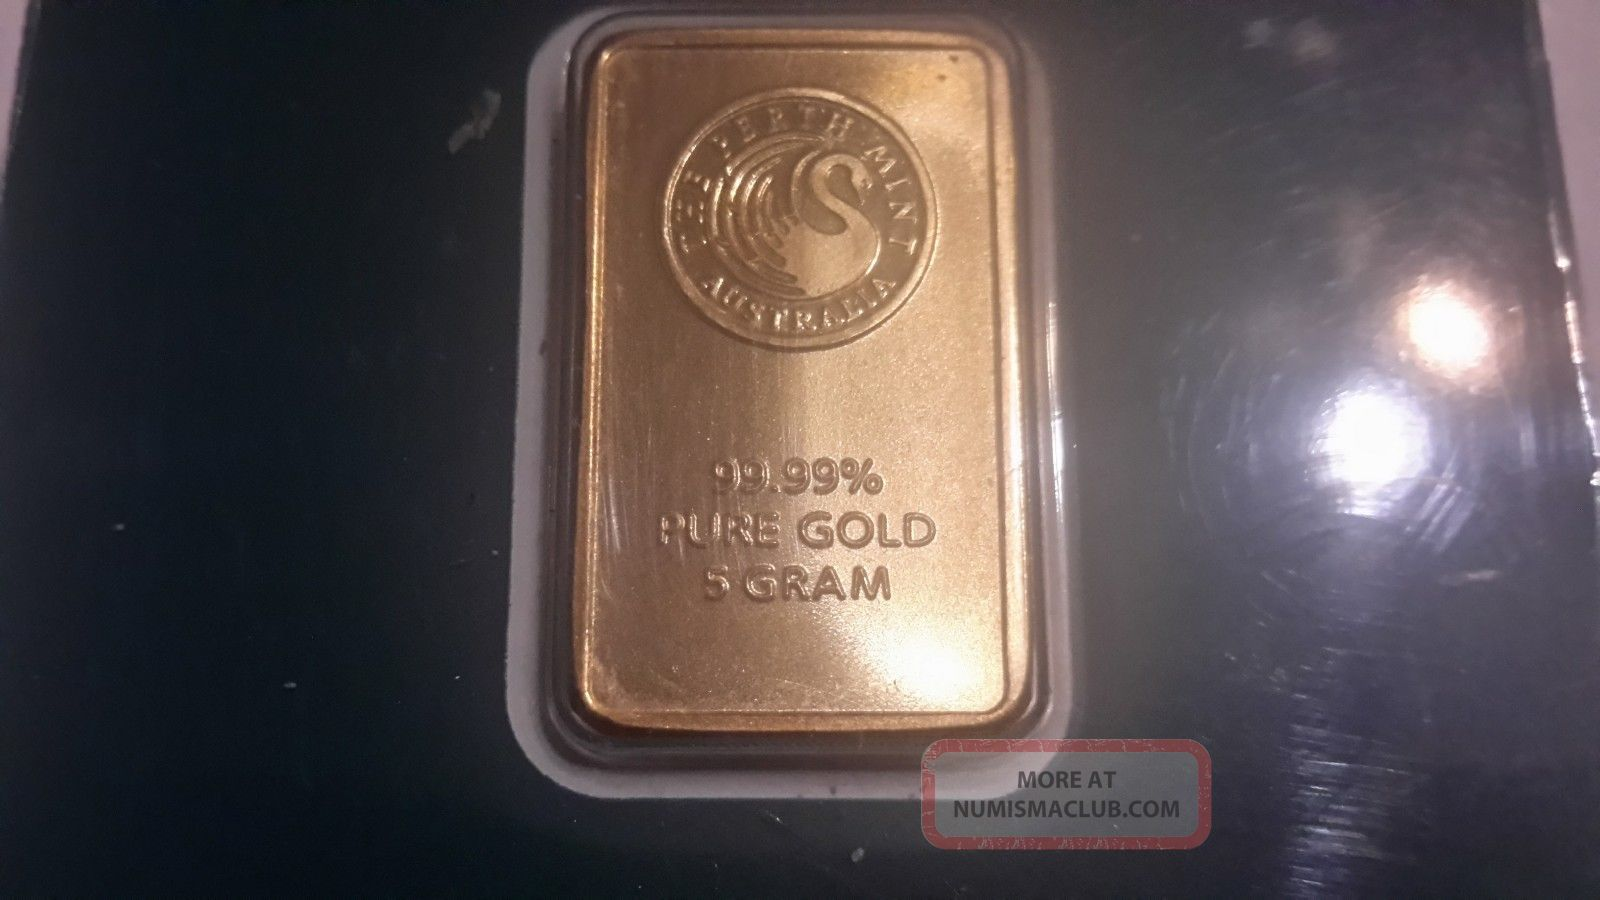 5 Gram Perth 24k Gold Bar